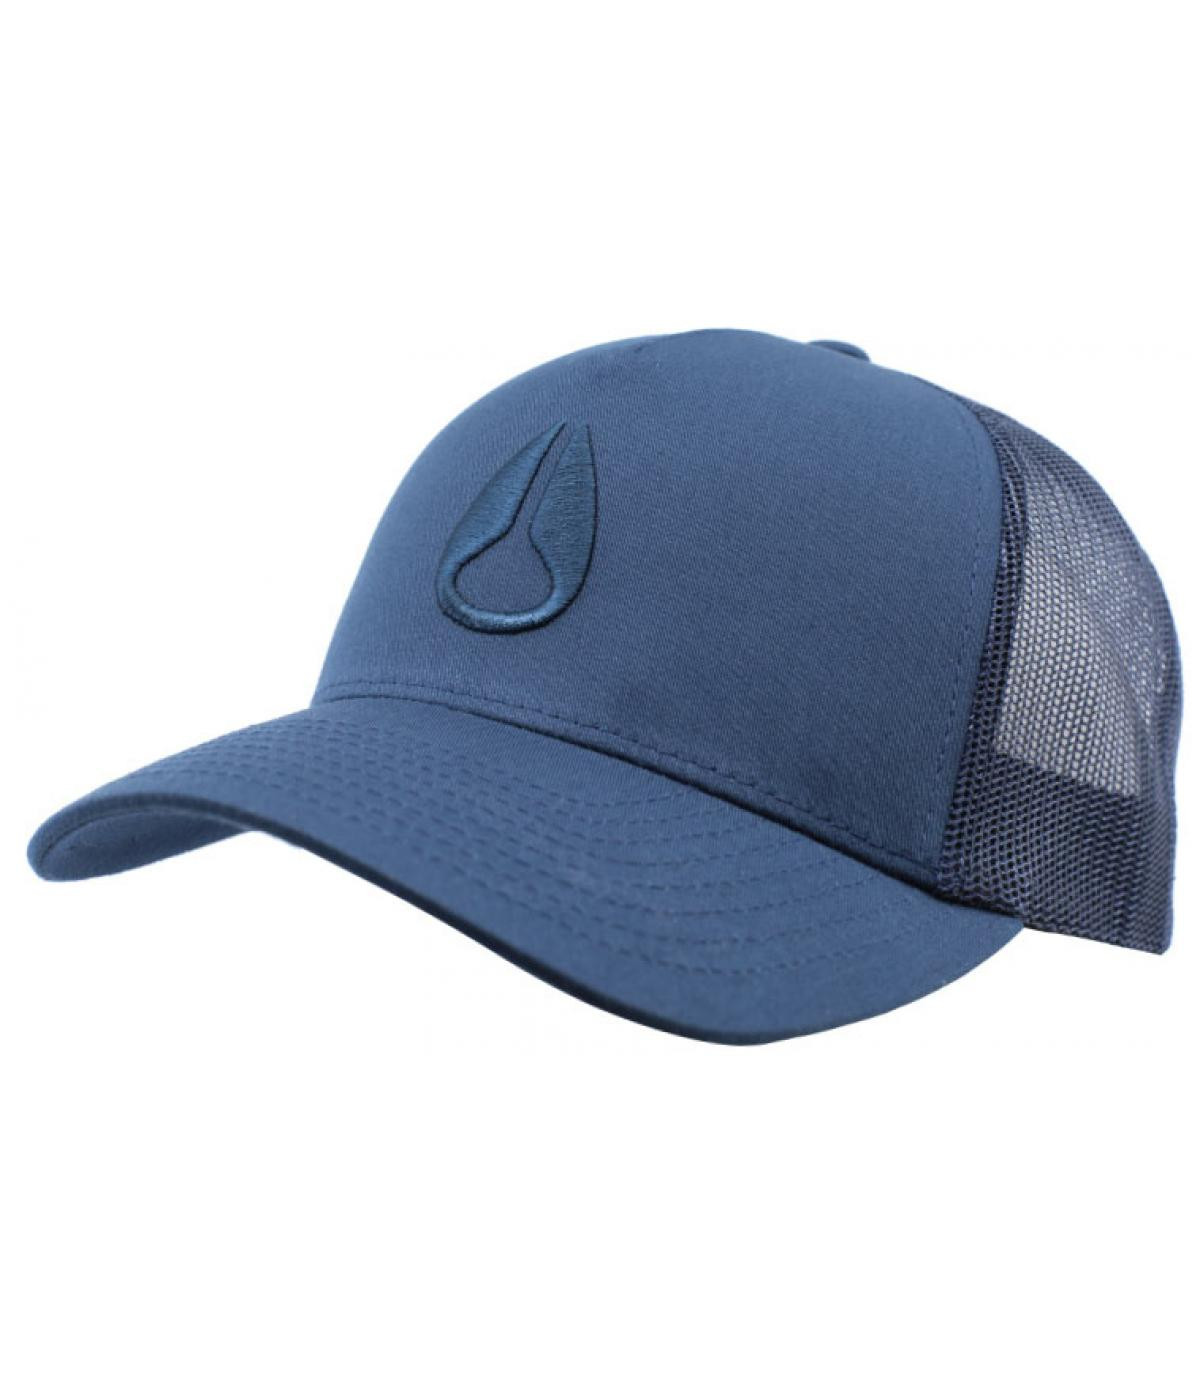 Details Iconed all navy - afbeeling 2